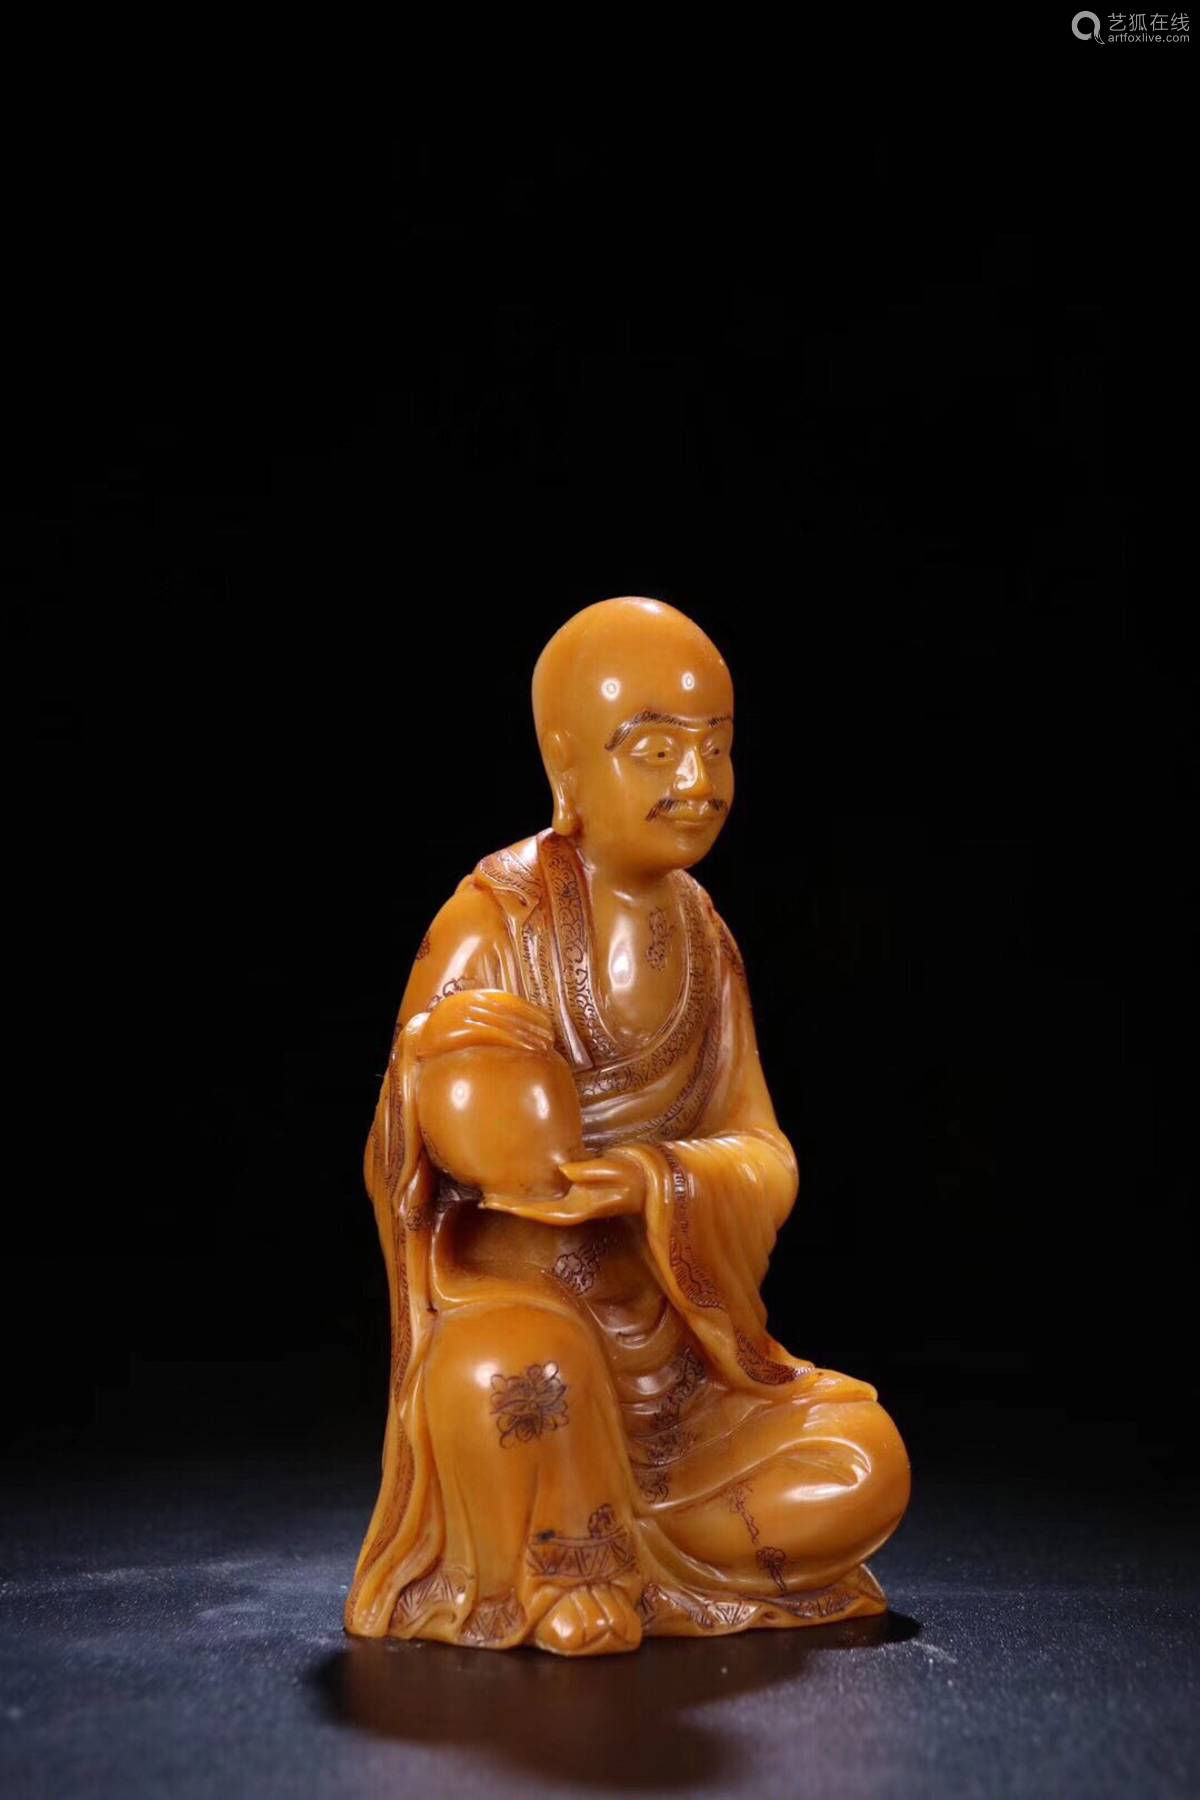 17-19TH CENTURY, A FIELD YELLOW STONE CARVED ARHAT STATUE,QING DYNASTY